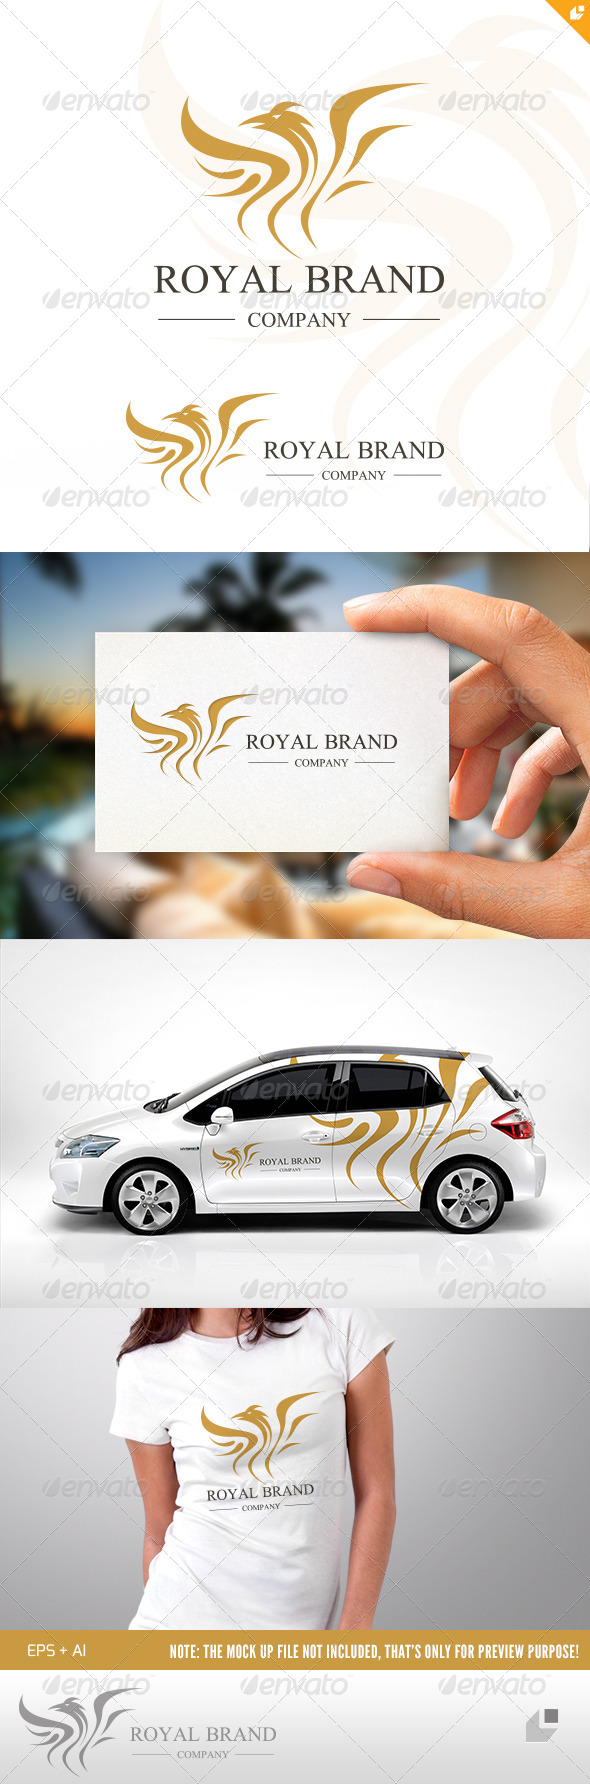 Eagle Royal Brand Logo  - Crests Logo Templates